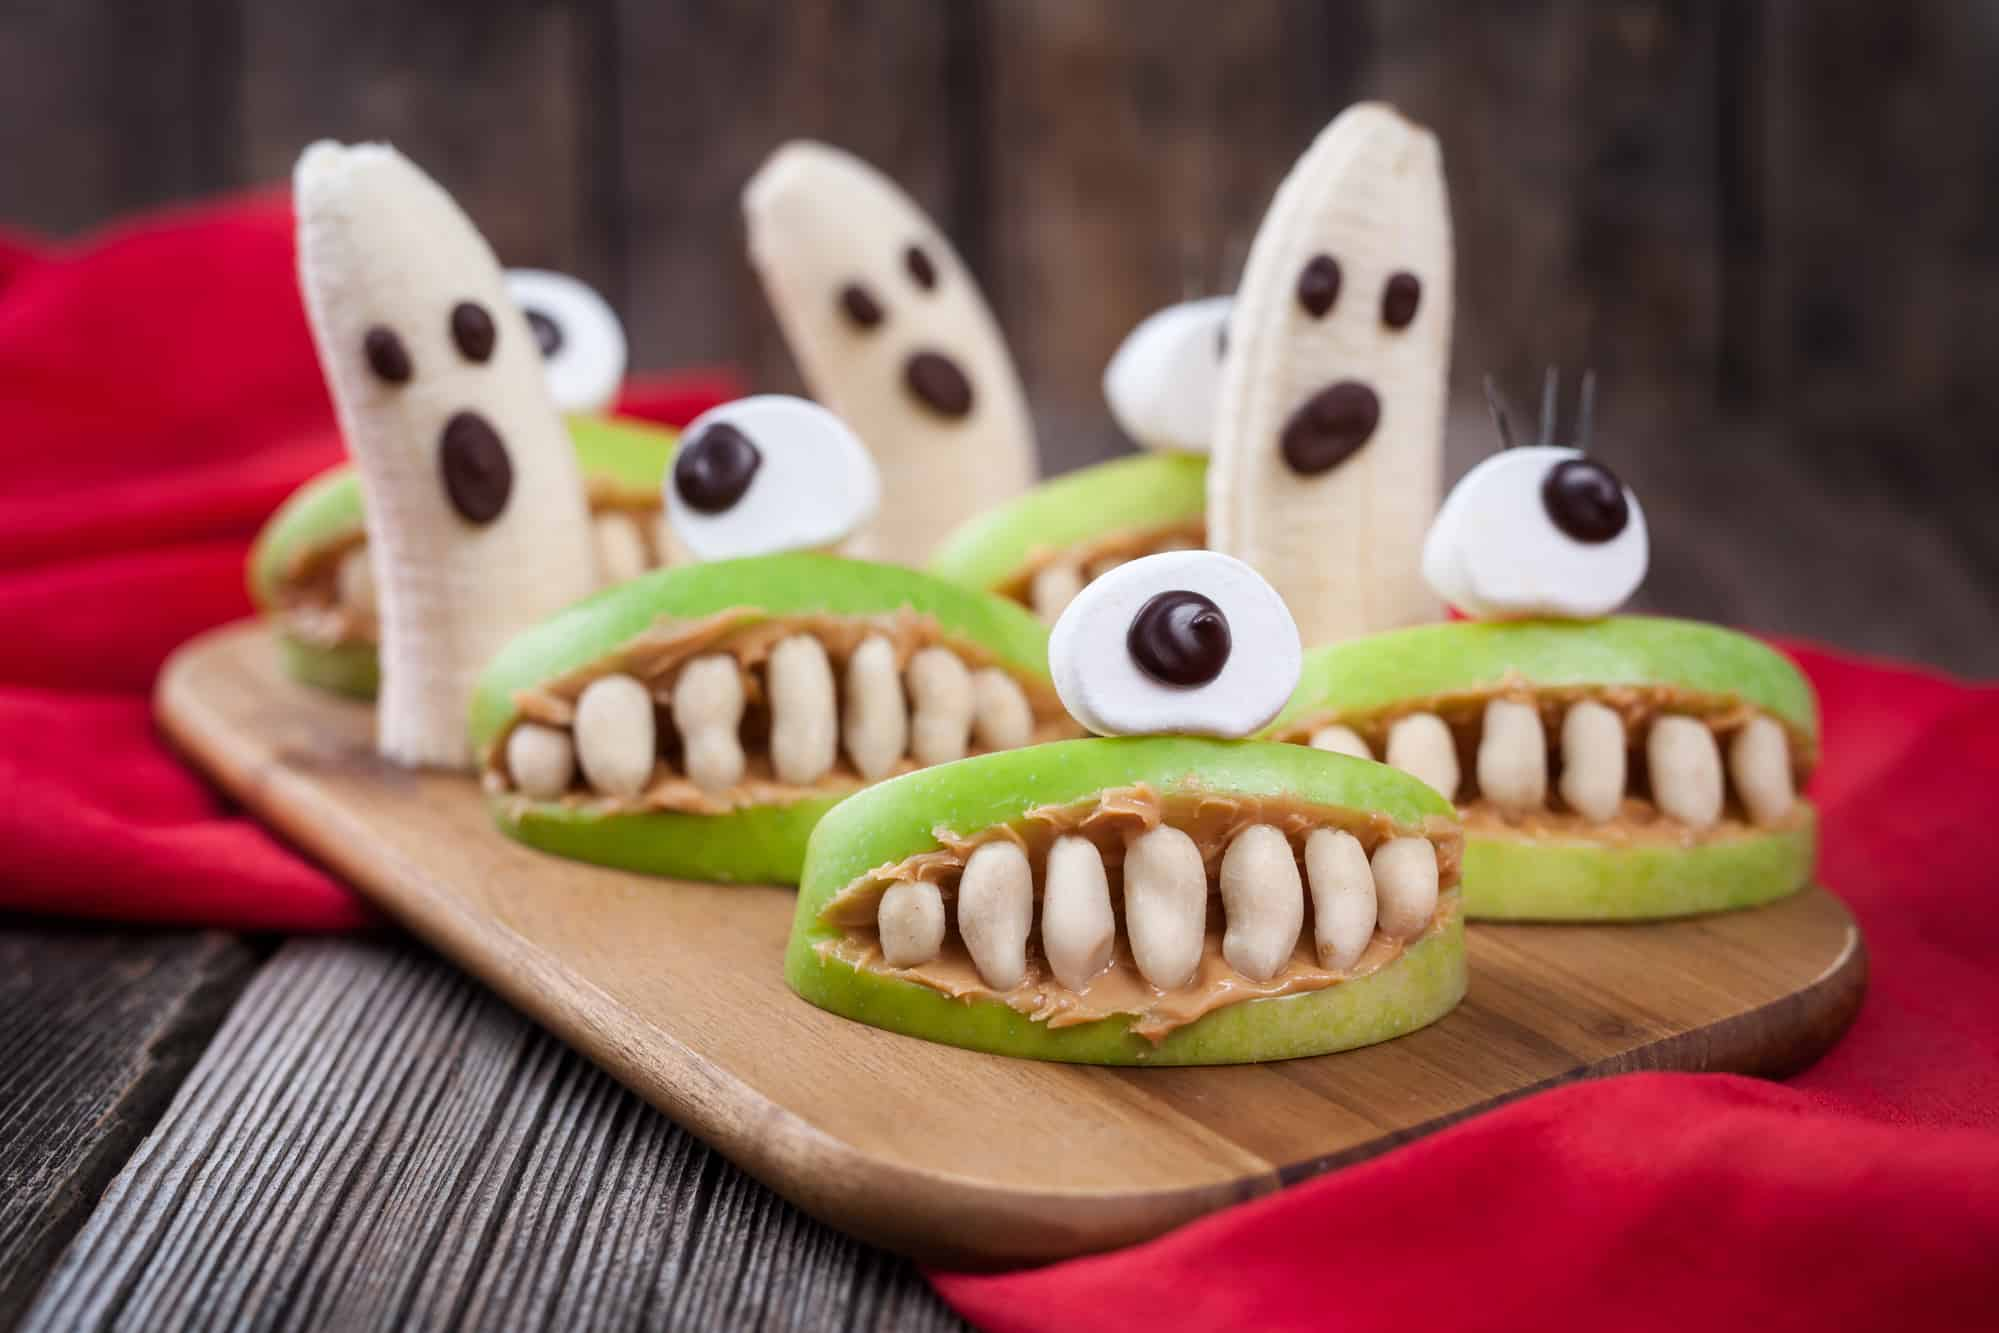 Halloween snack of apple slices that look like a mouth with marshmallow teeth